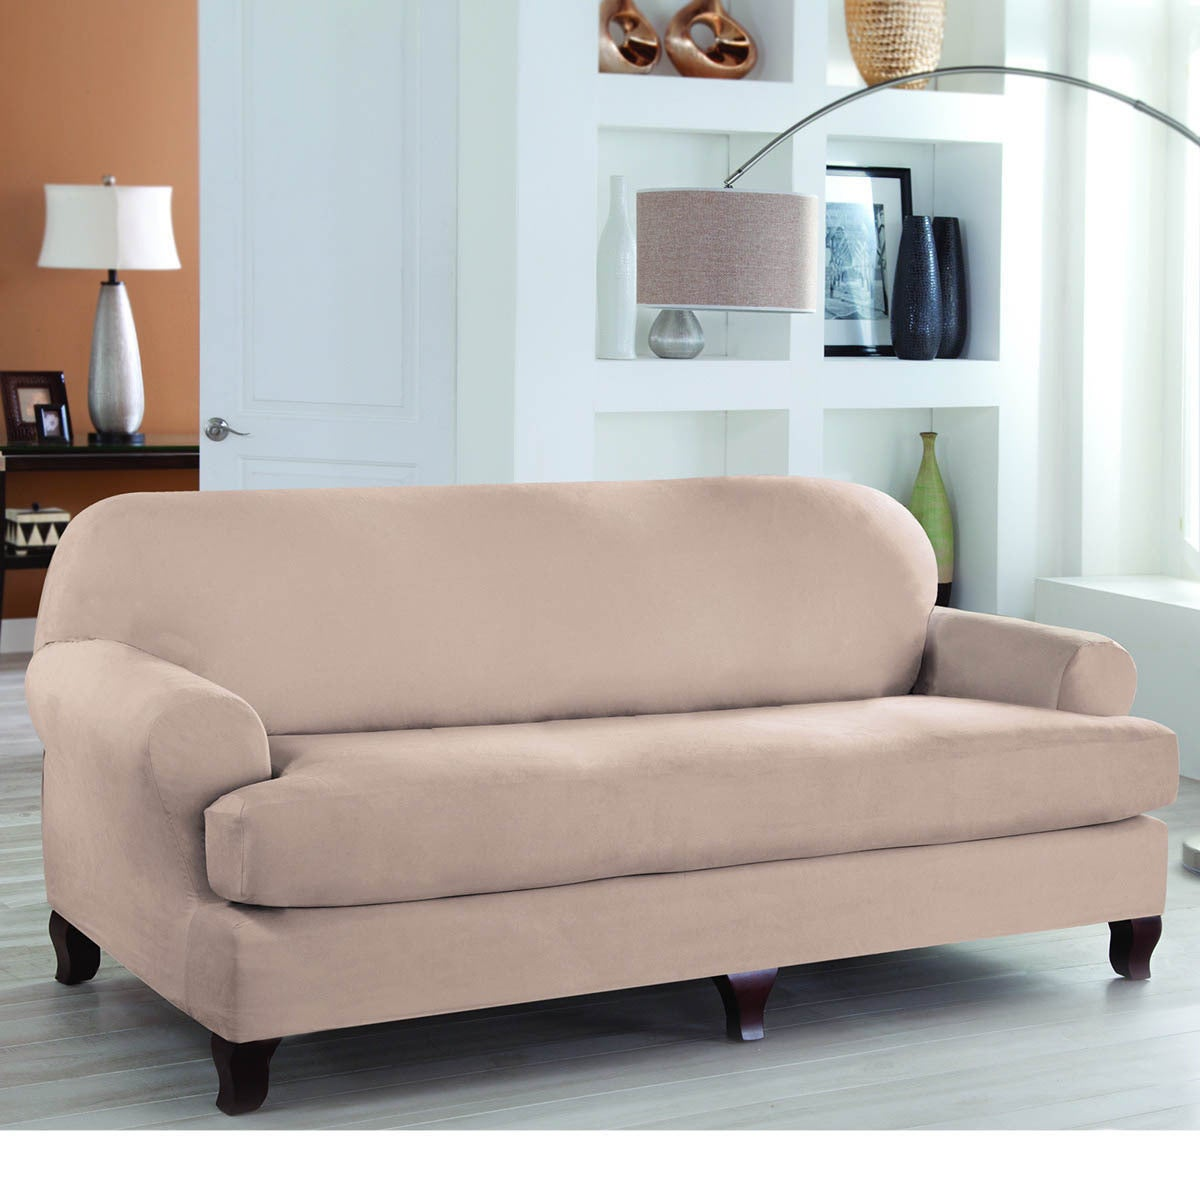 Shop Tailor Fit Stretch Fit 2 Piece Sofa Slipcover - On Sale - Free ...